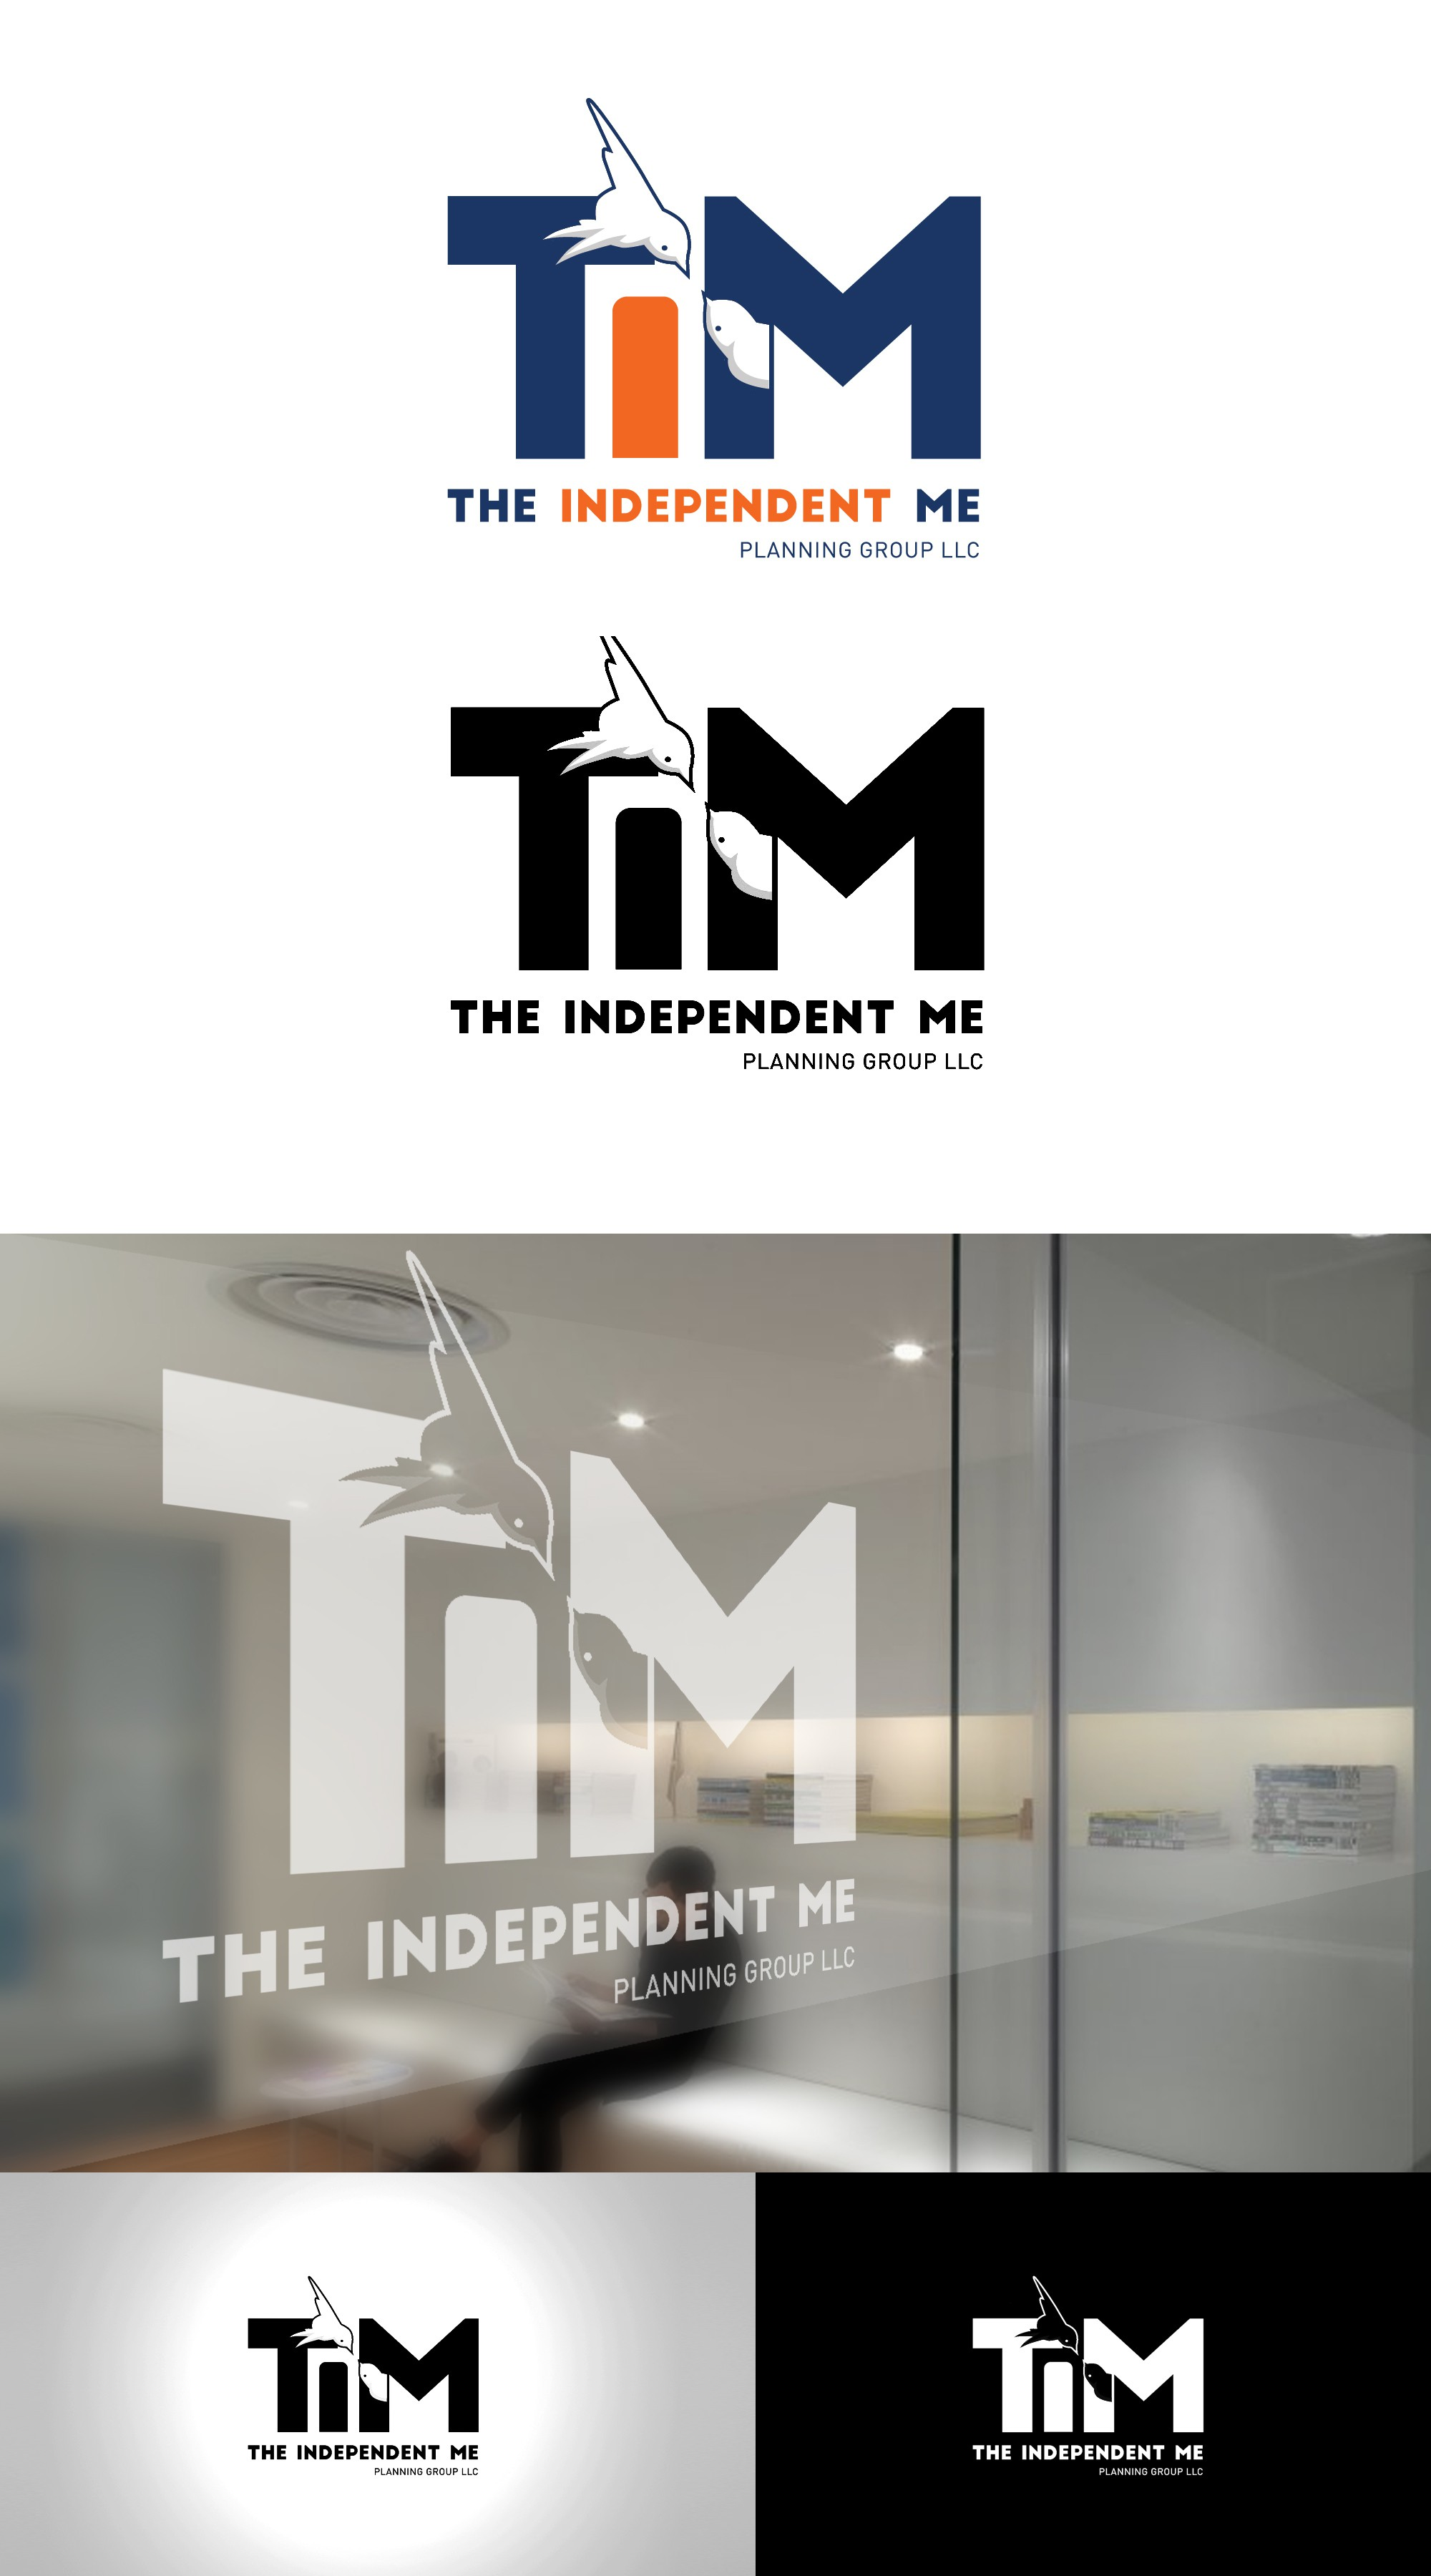 Who is T.I.M.? Design the winning logo for what or who T.I.M. will become.